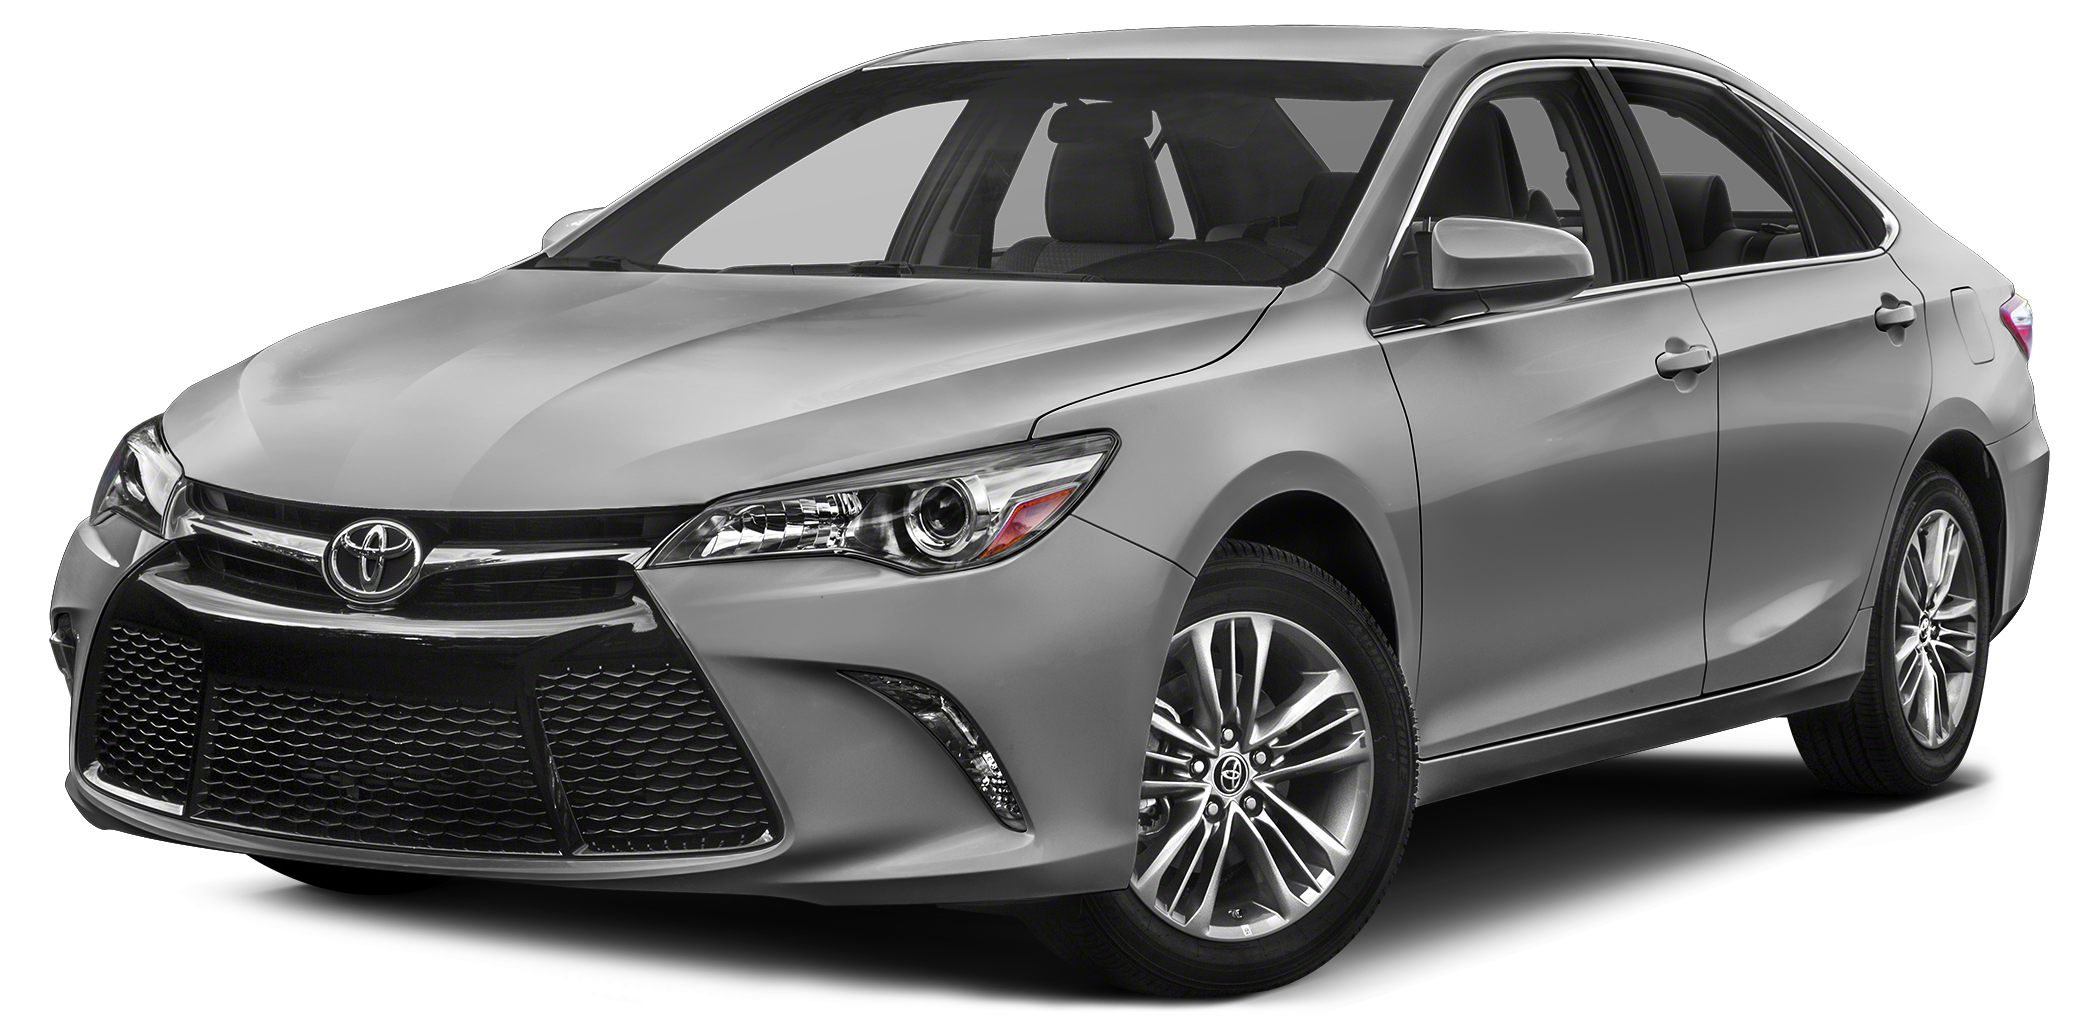 2016 Toyota Camry SE Sunroof CD Player MOONROOF PACKAGE Alloy Wheels Back-Up Camera Bluetooth